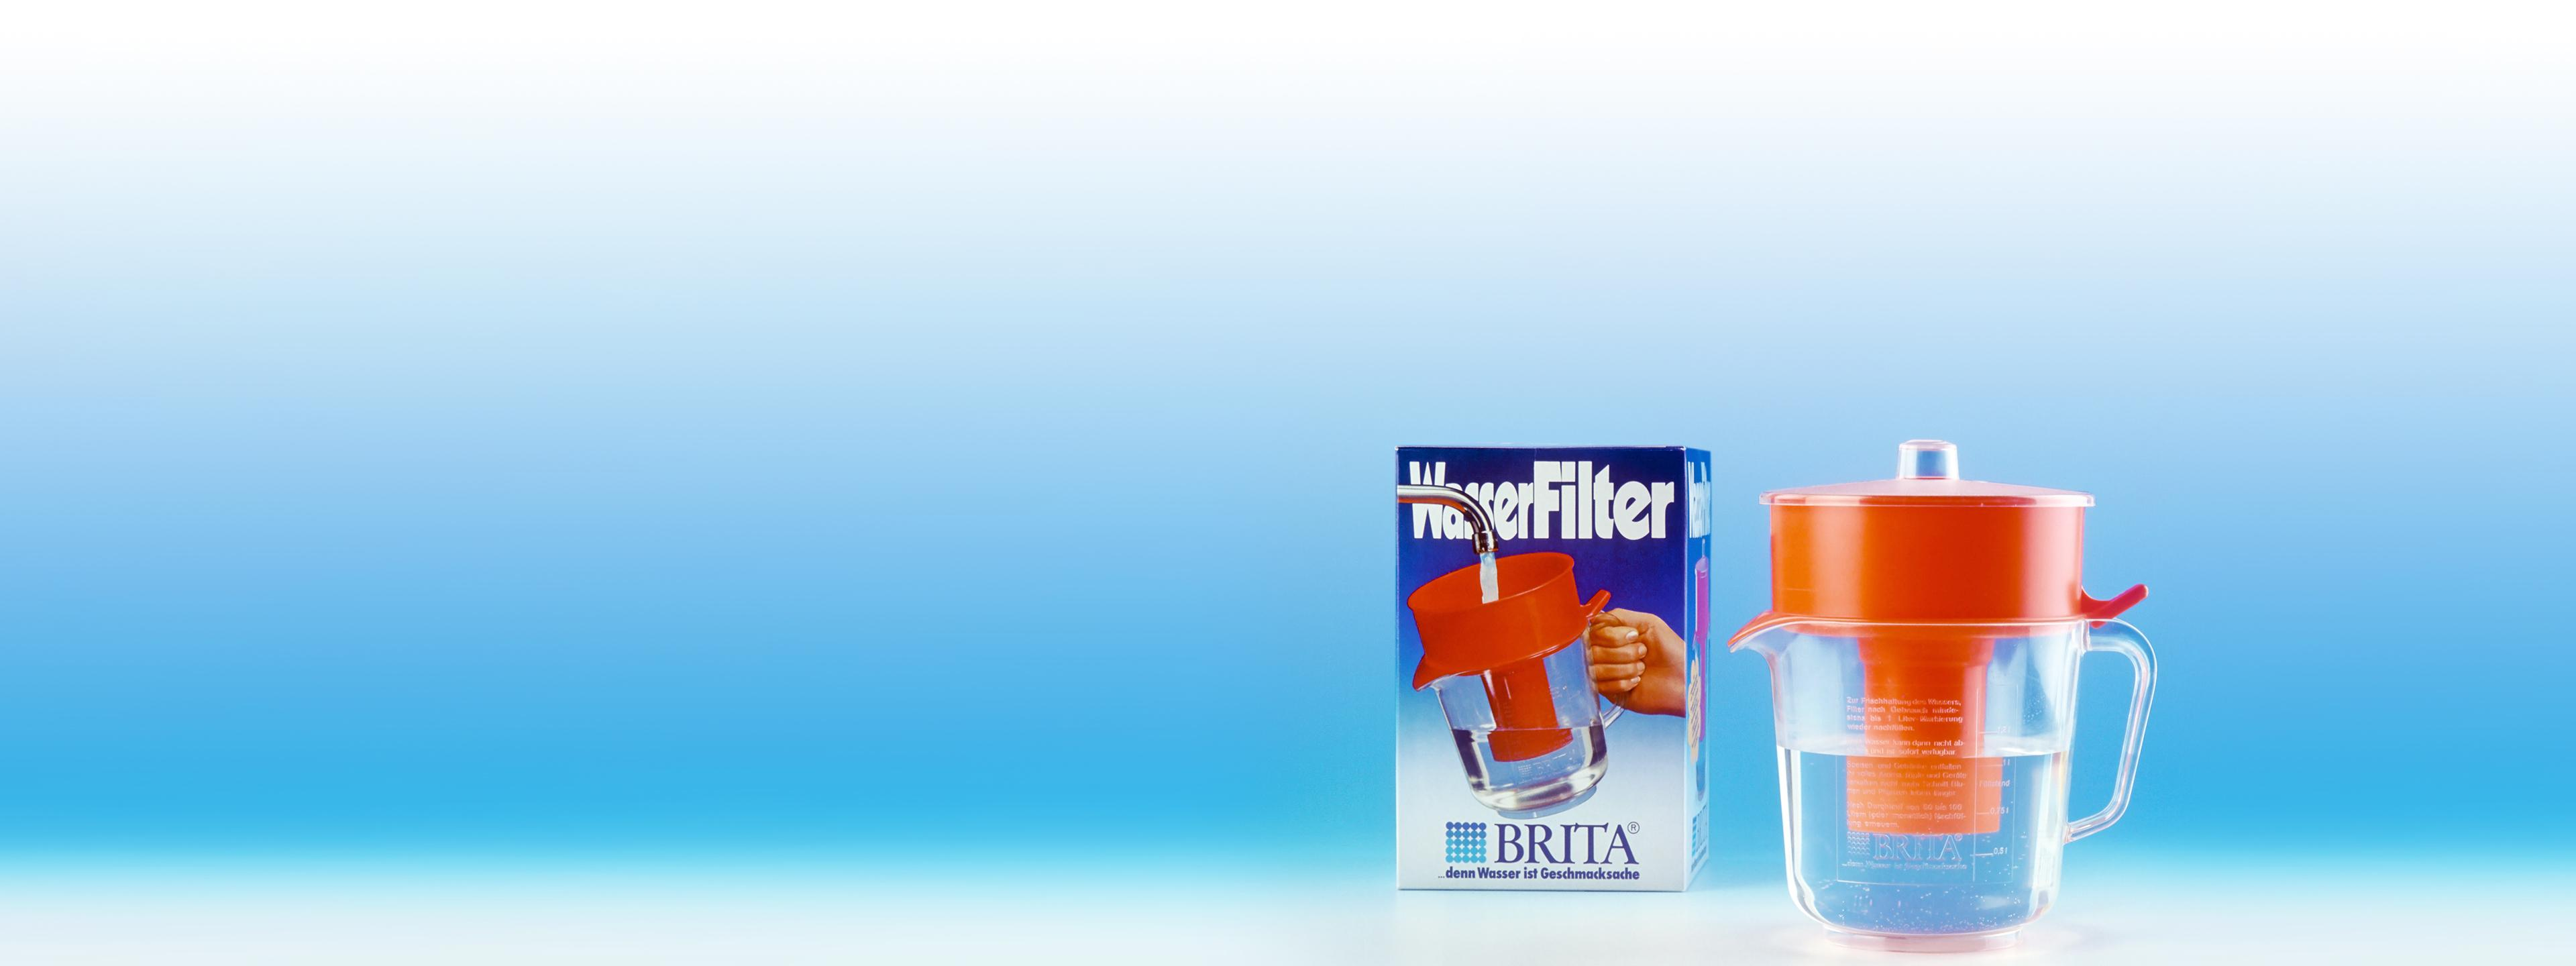 BRITA history first water filter